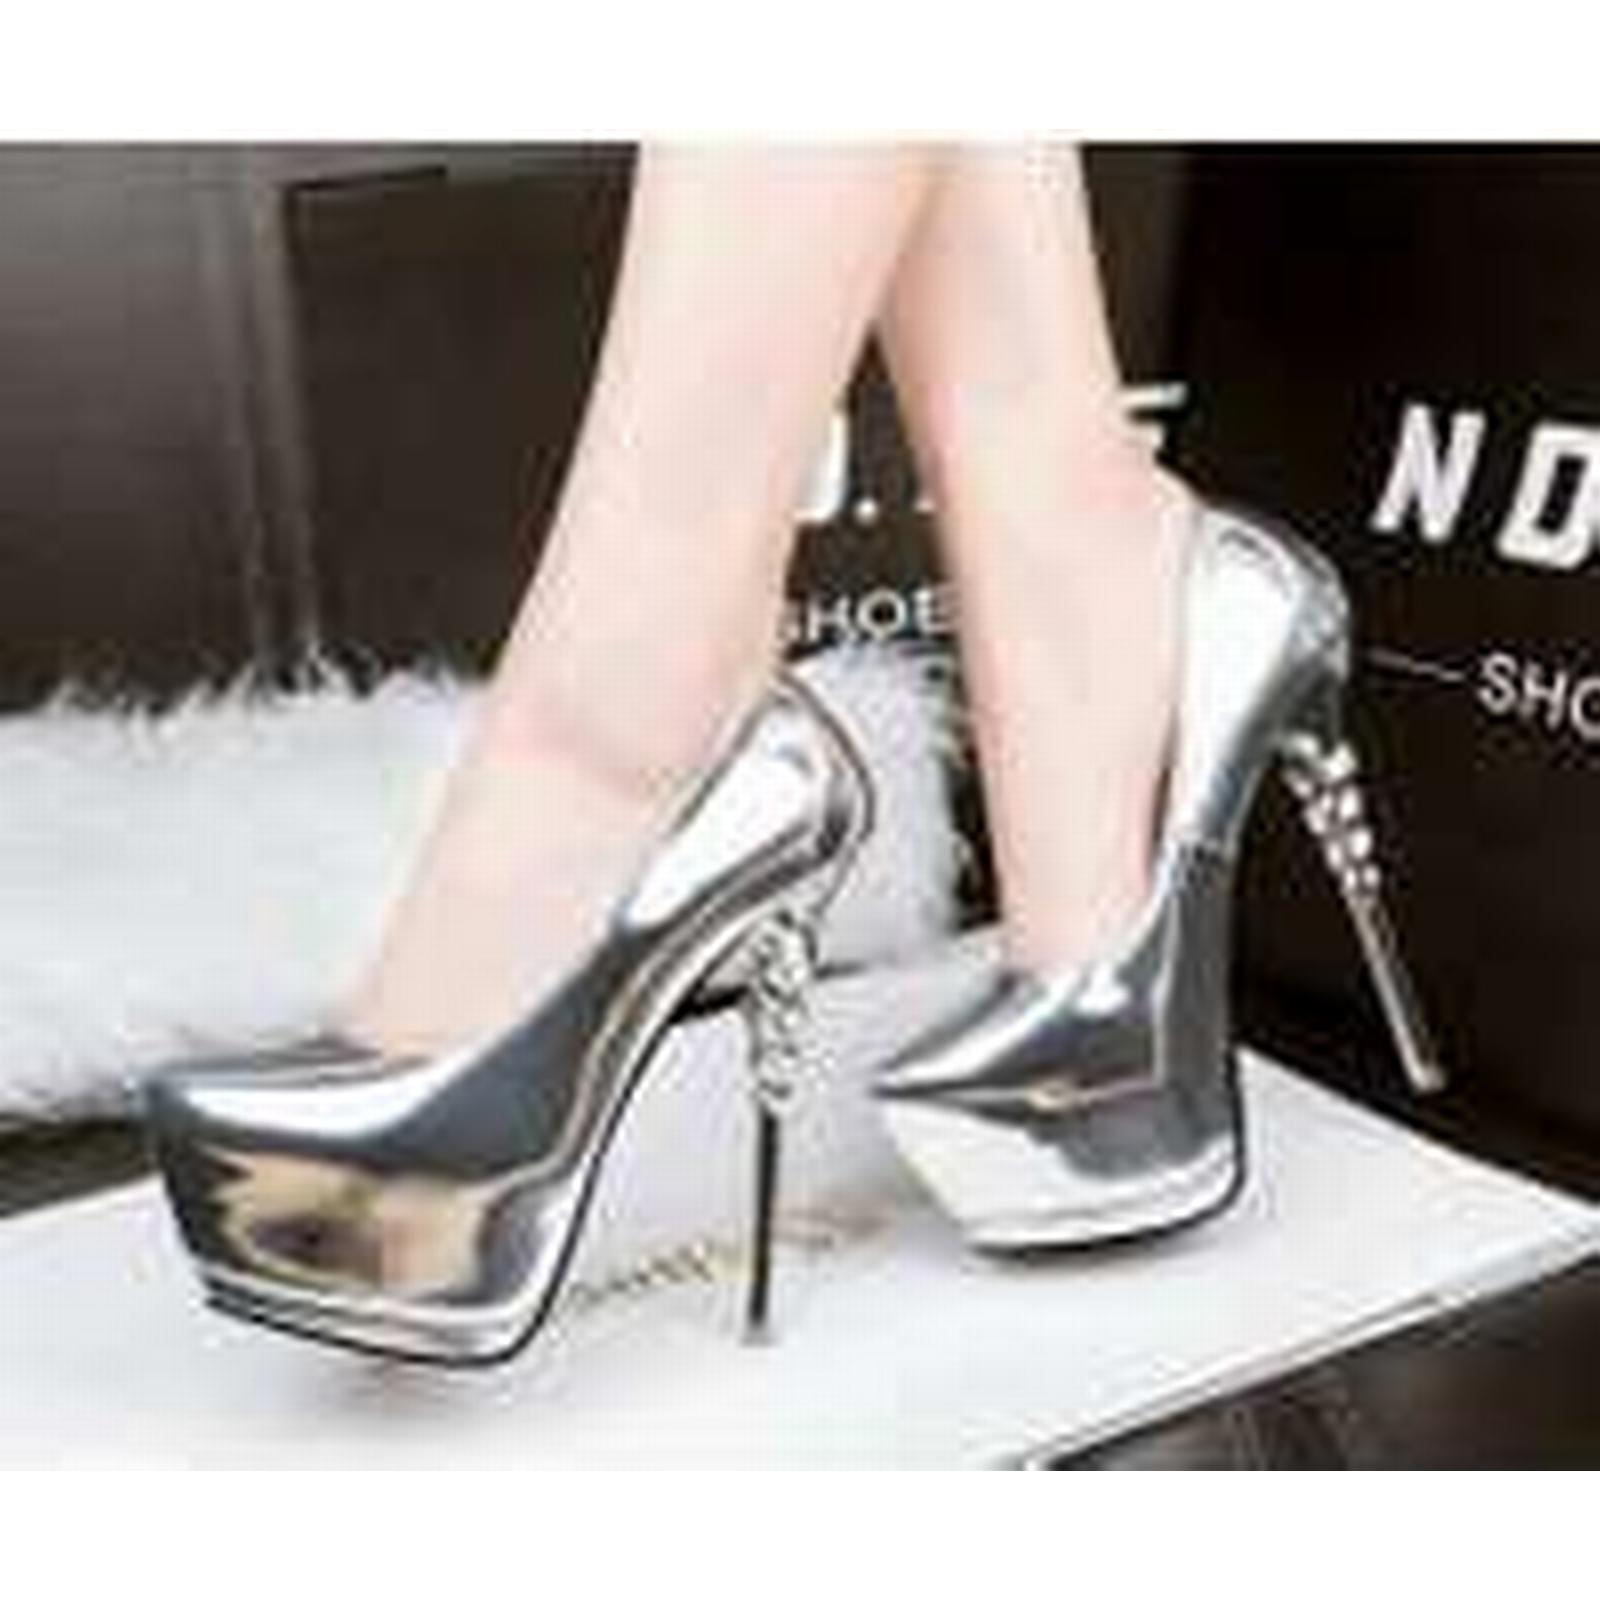 Bonanza (Global) pp271 Stunning twisted high US heel pump, patent leather, US high Size 5-8.5, silver c415fa